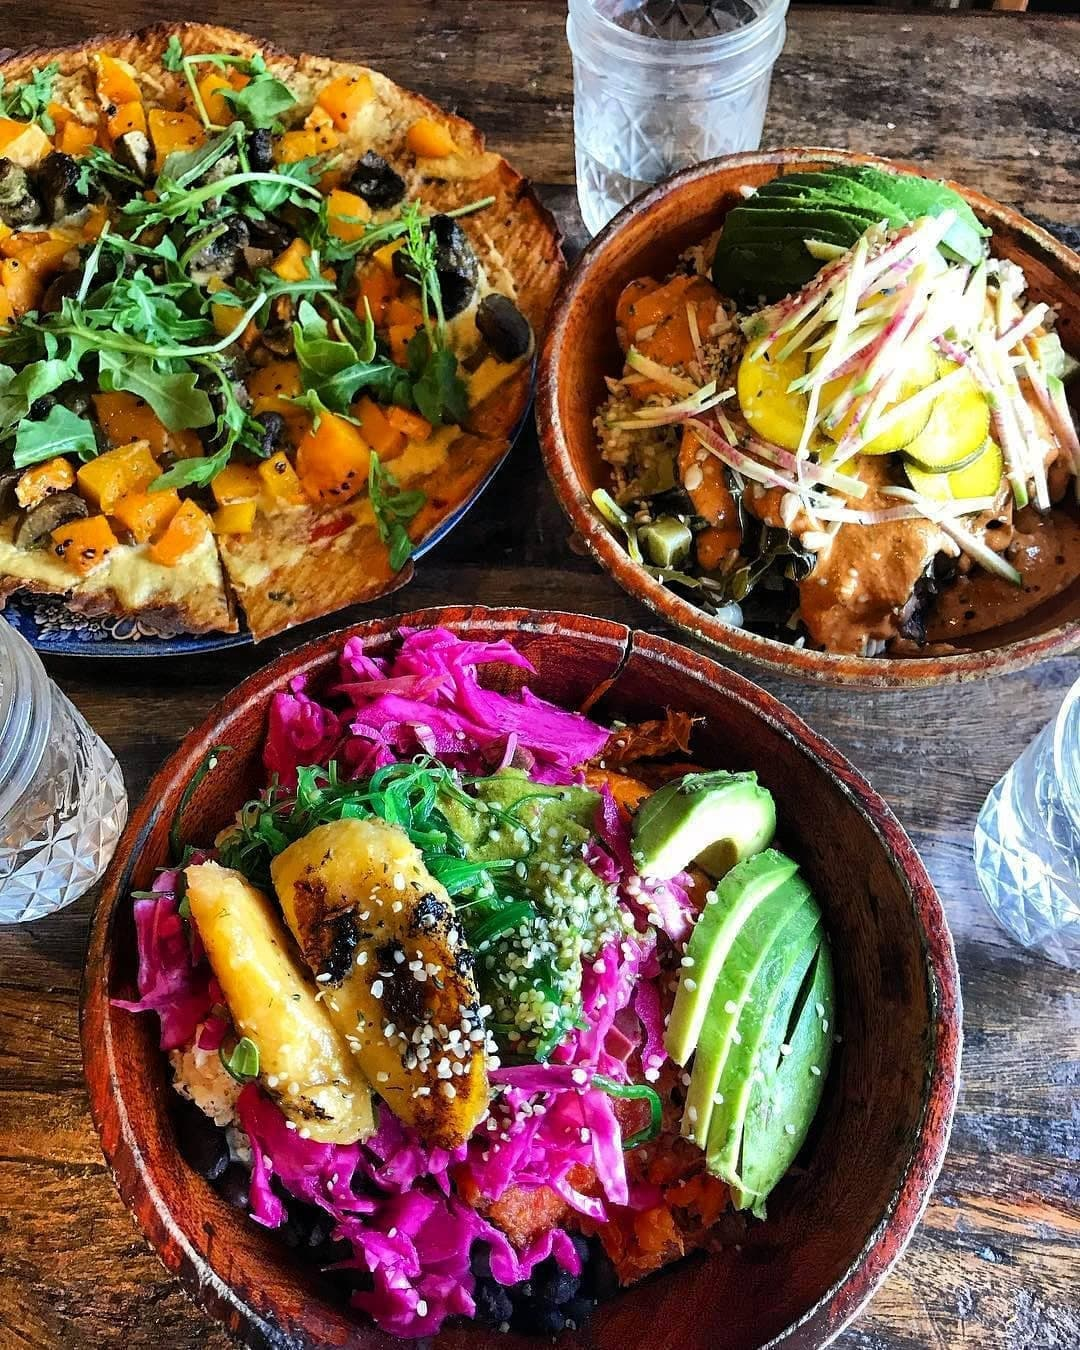 💚 Eve - Eve is a casual restaurant serving up imaginative menus of various plan based vegan meals all day. They have two locations in Encinitas and Oceanside with room for events. Their menu includes warm macrobiotic bowls, flatbreads, burgers, sandwiches, pizzas, salads, smoothies, and best yet, kids eat free every single day!